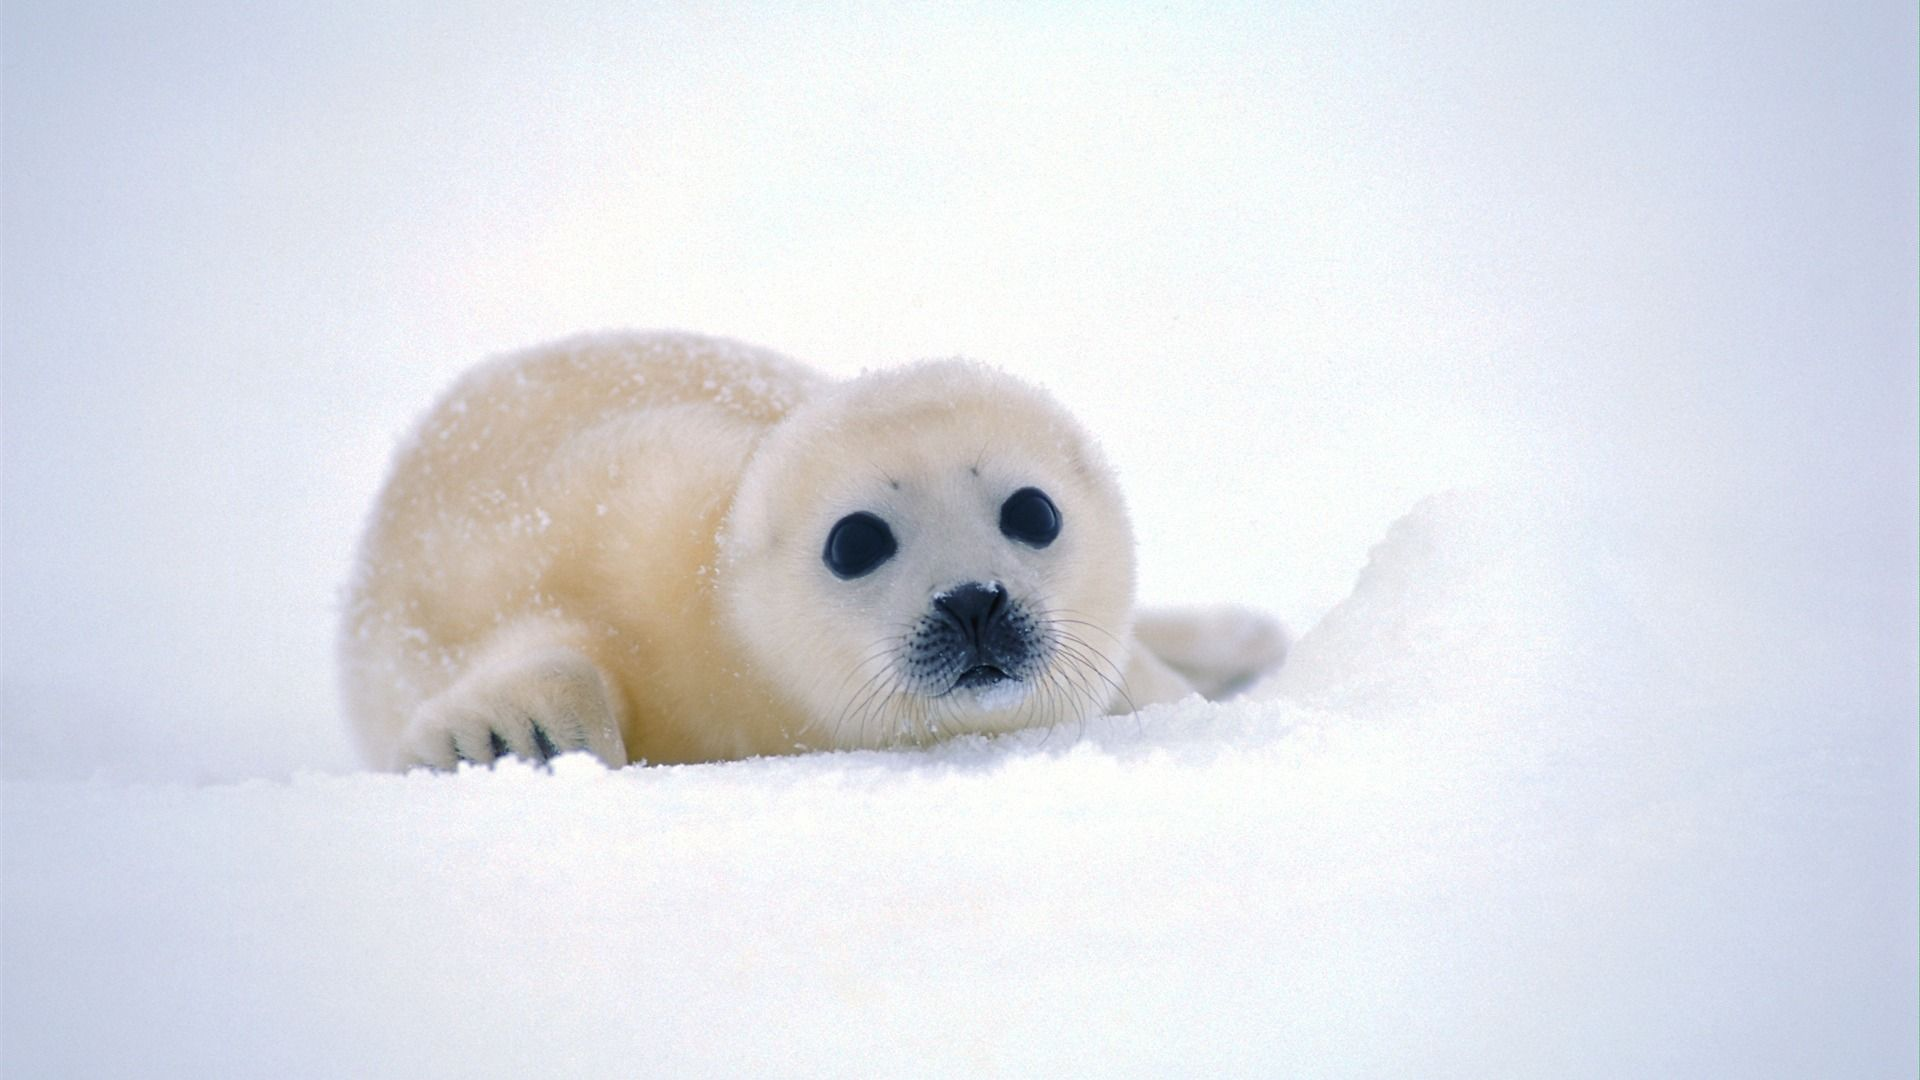 ccfaafbdedced-baby-seal-seals-wallpaper-wp3803544